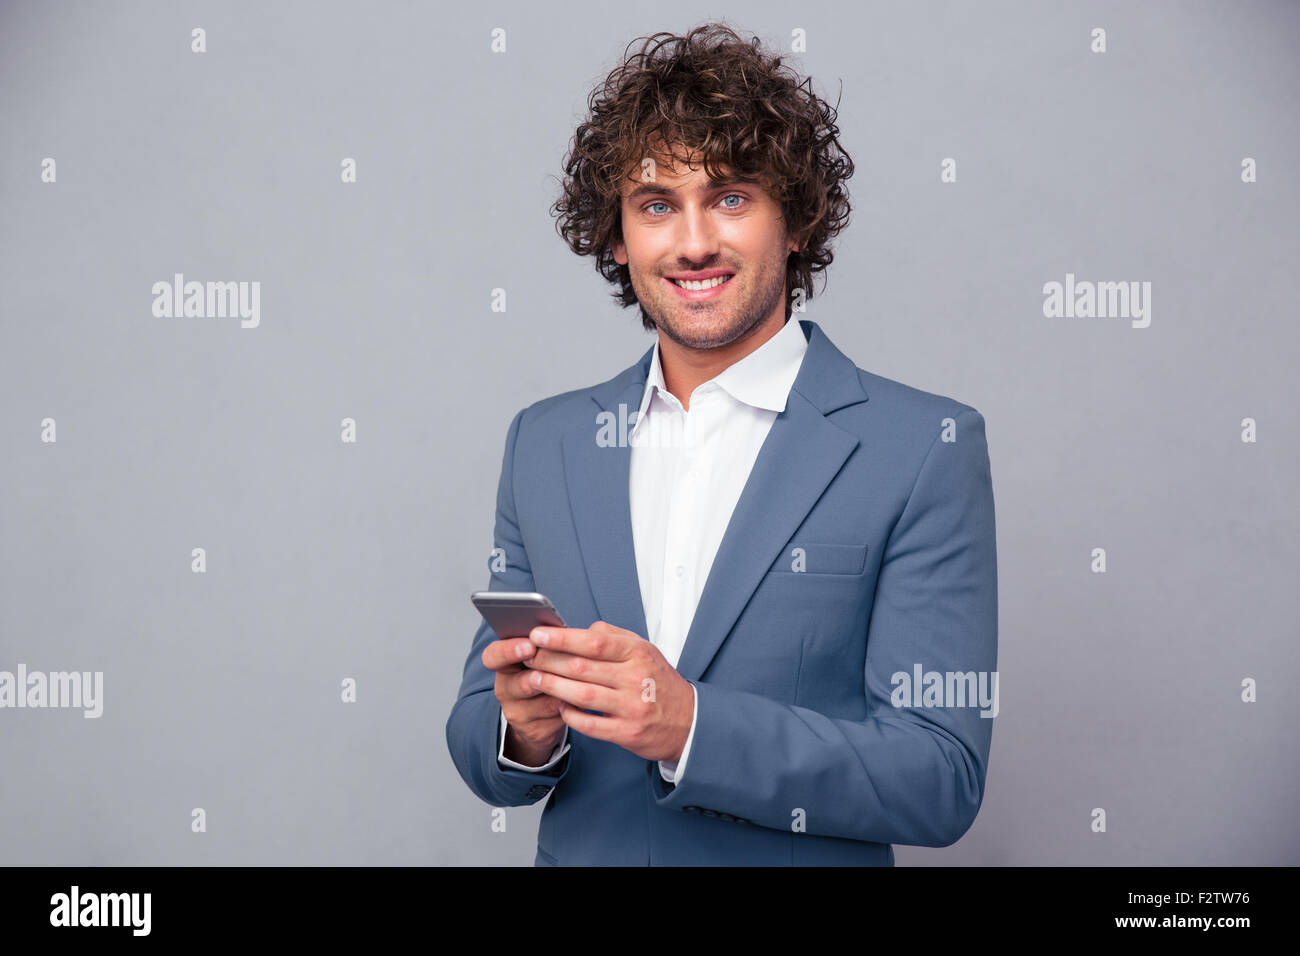 Portrait of a happy businessman holding smartphone and looking at camera over gray background Stock Photo